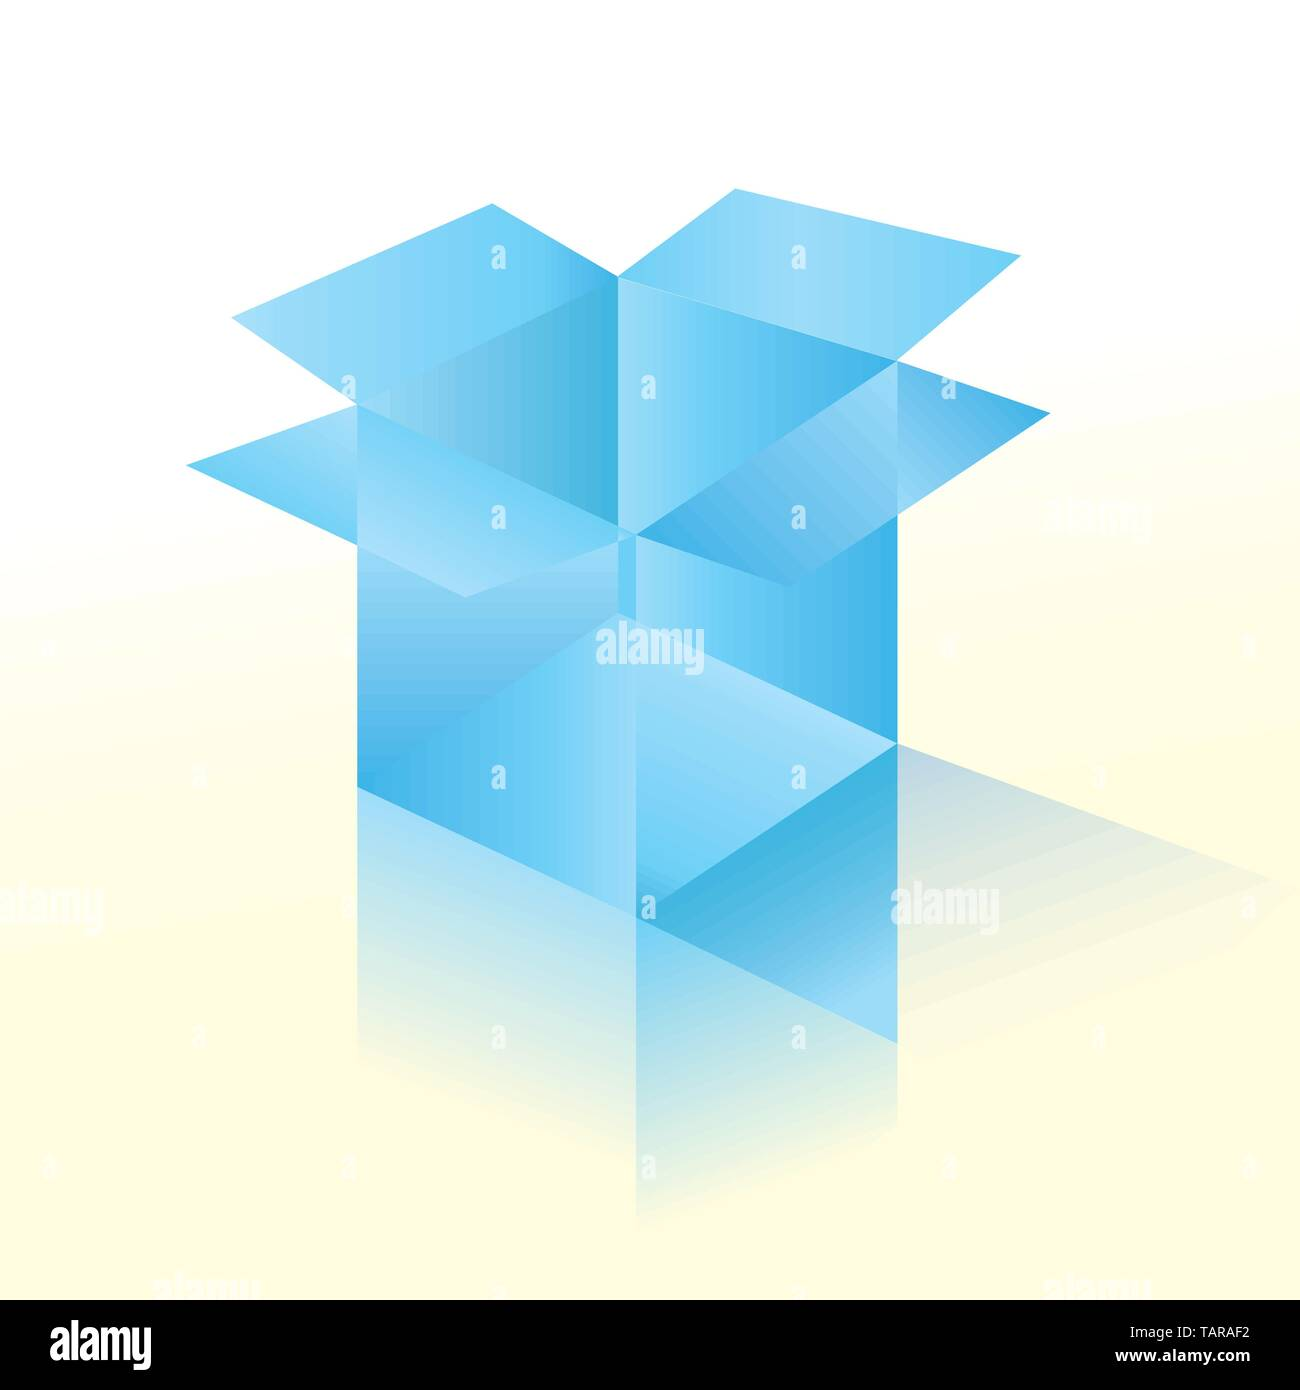 Vector illustration of glass box in 3D with reflects. Stock Vector